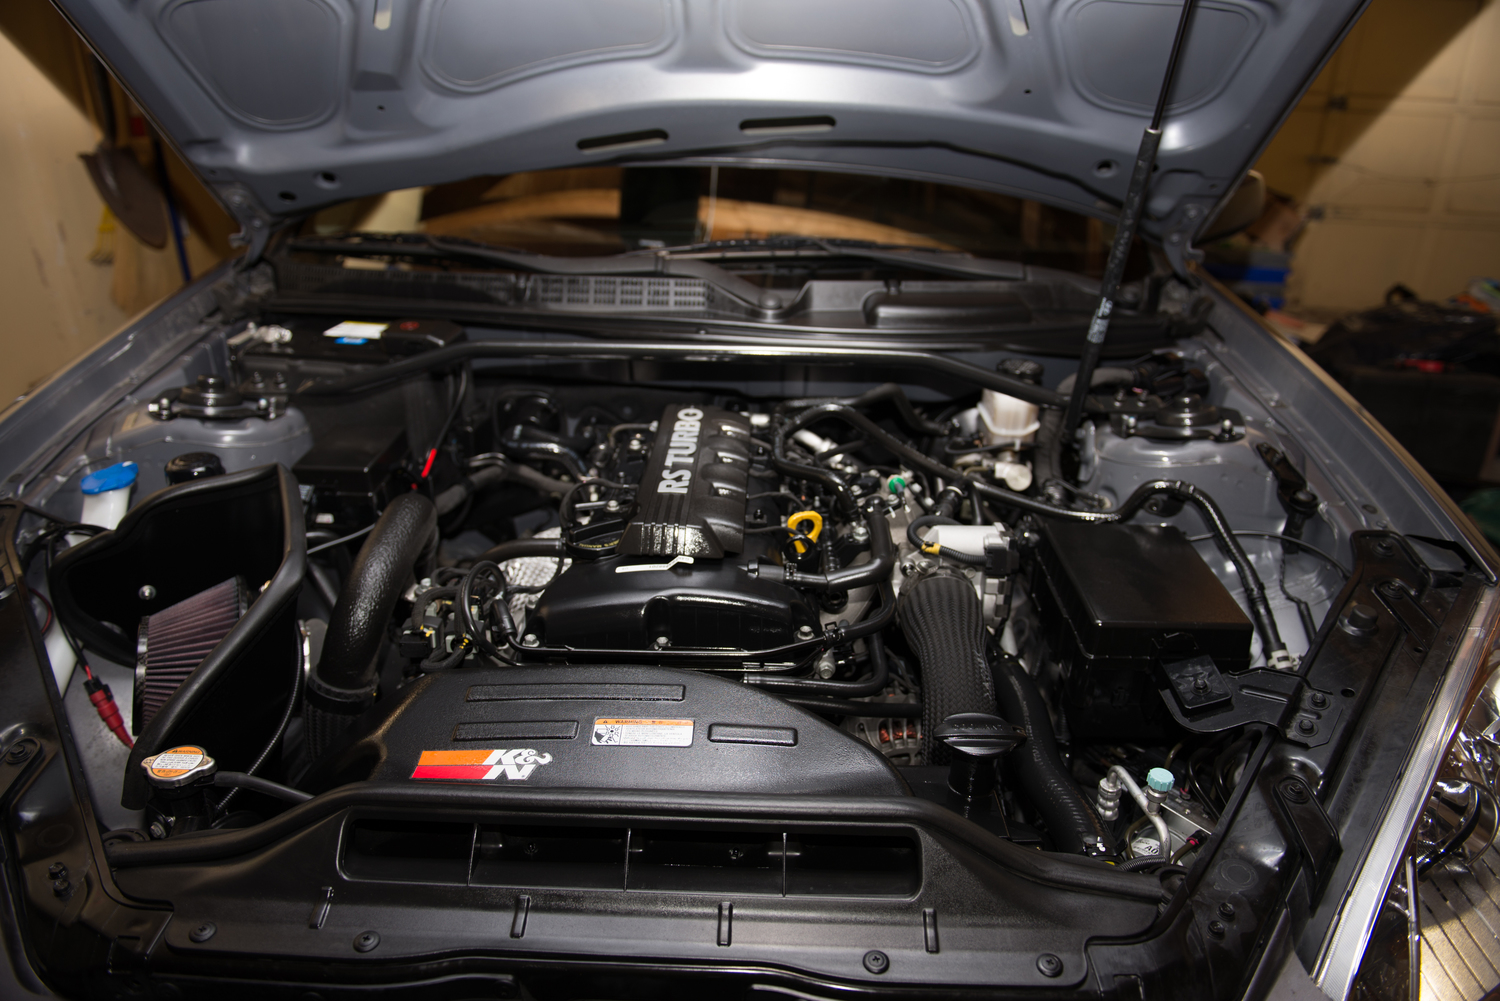 Do it yourself diy guide how to detail the engine bay to award do it yourself diy guide how to detail the engine bay solutioingenieria Gallery